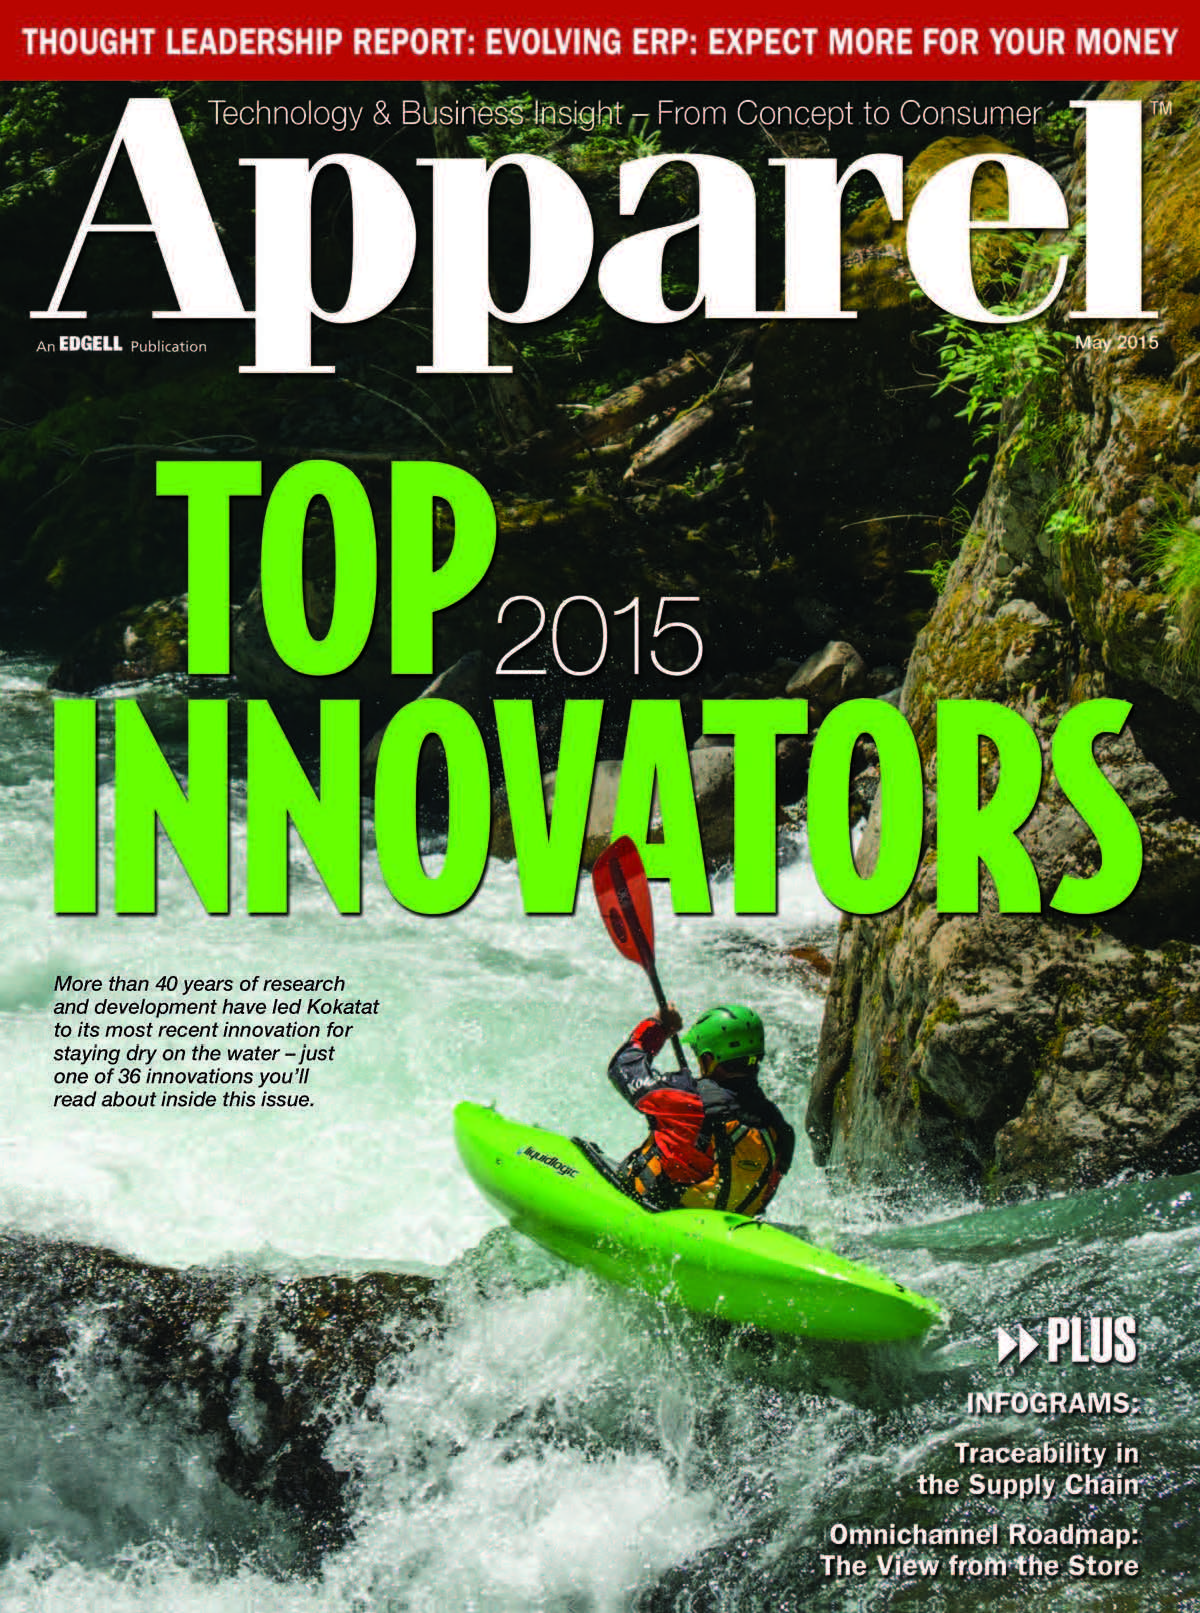 apparel-innovators-awards-2015-2an-page-1.jpg